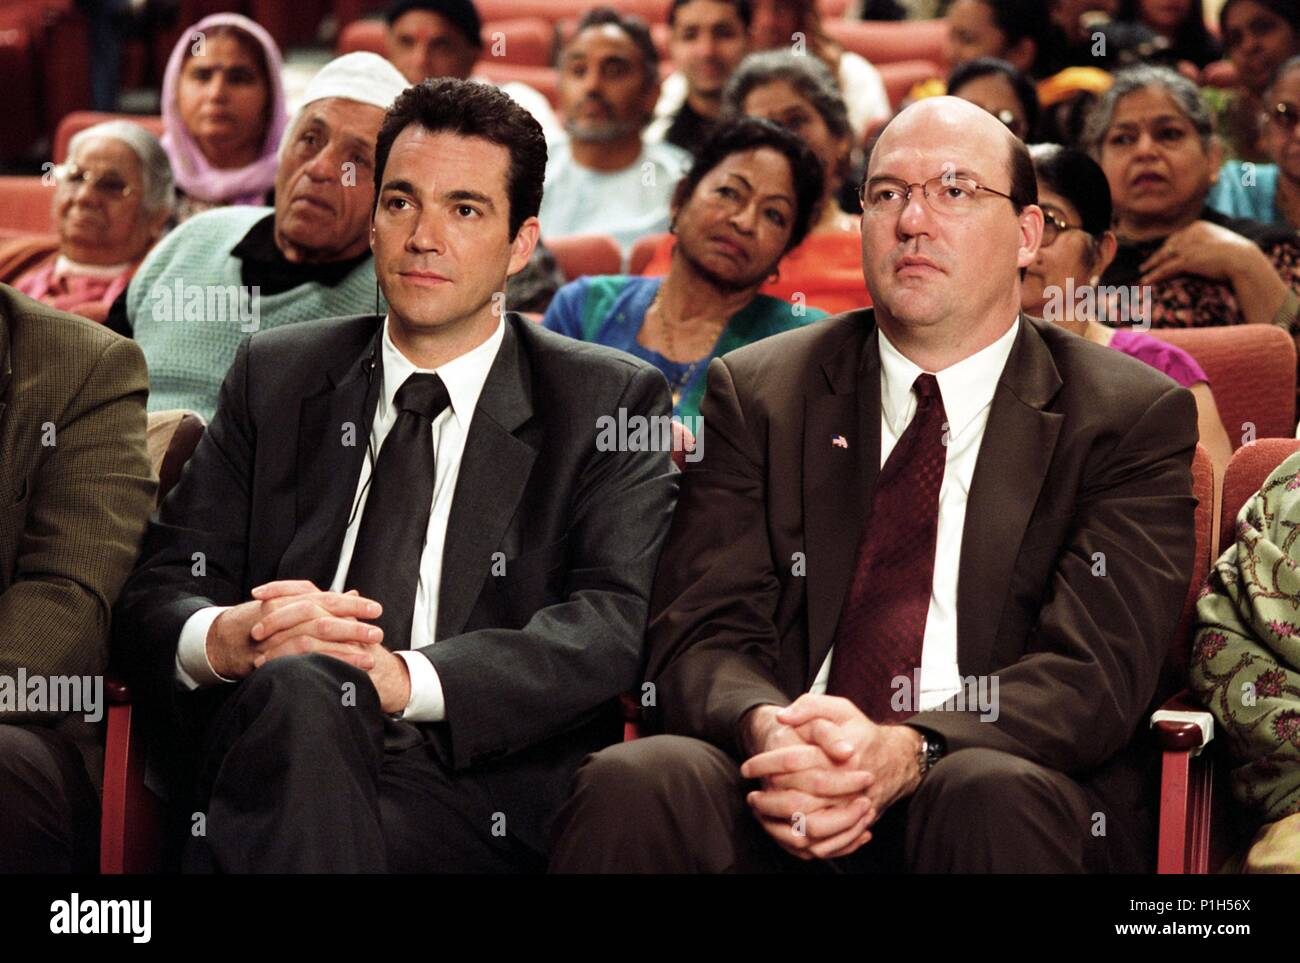 Original Film Title: LOOKING FOR COMEDY IN THE MUSLIM WORLD.  English Title: LOOKING FOR COMEDY IN THE MUSLIM WORLD.  Film Director: ALBERT BROOKS.  Year: 2005.  Stars: JON TENNEY; JOHN CARROLL LYNCH. Credit: WARNER INDEPENDENT PICTURES / TERRELL, LACEY / Album - Stock Image